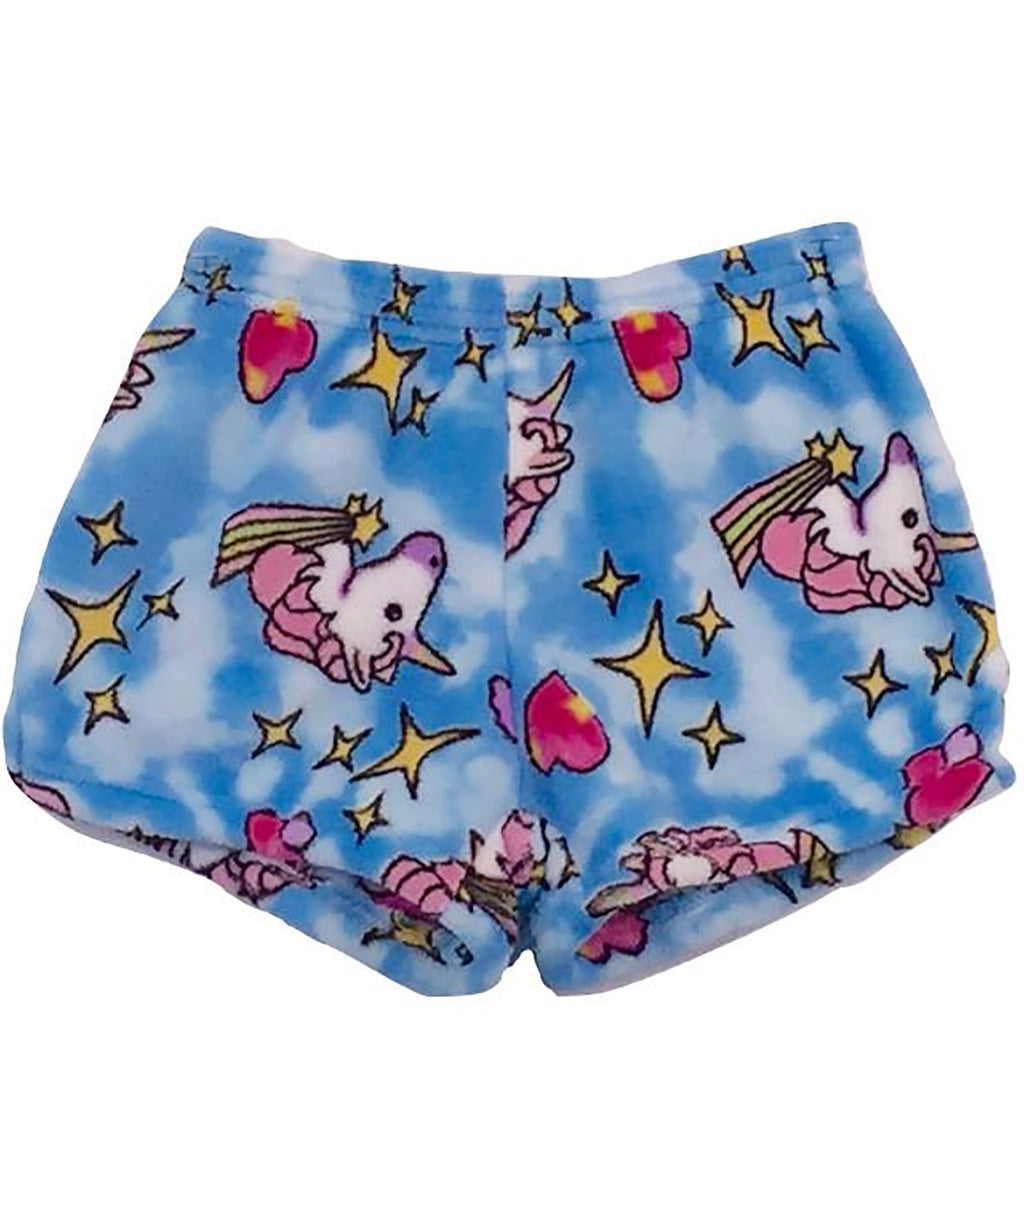 Made with Love and Kisses Girls Blue Unicorn Shorts